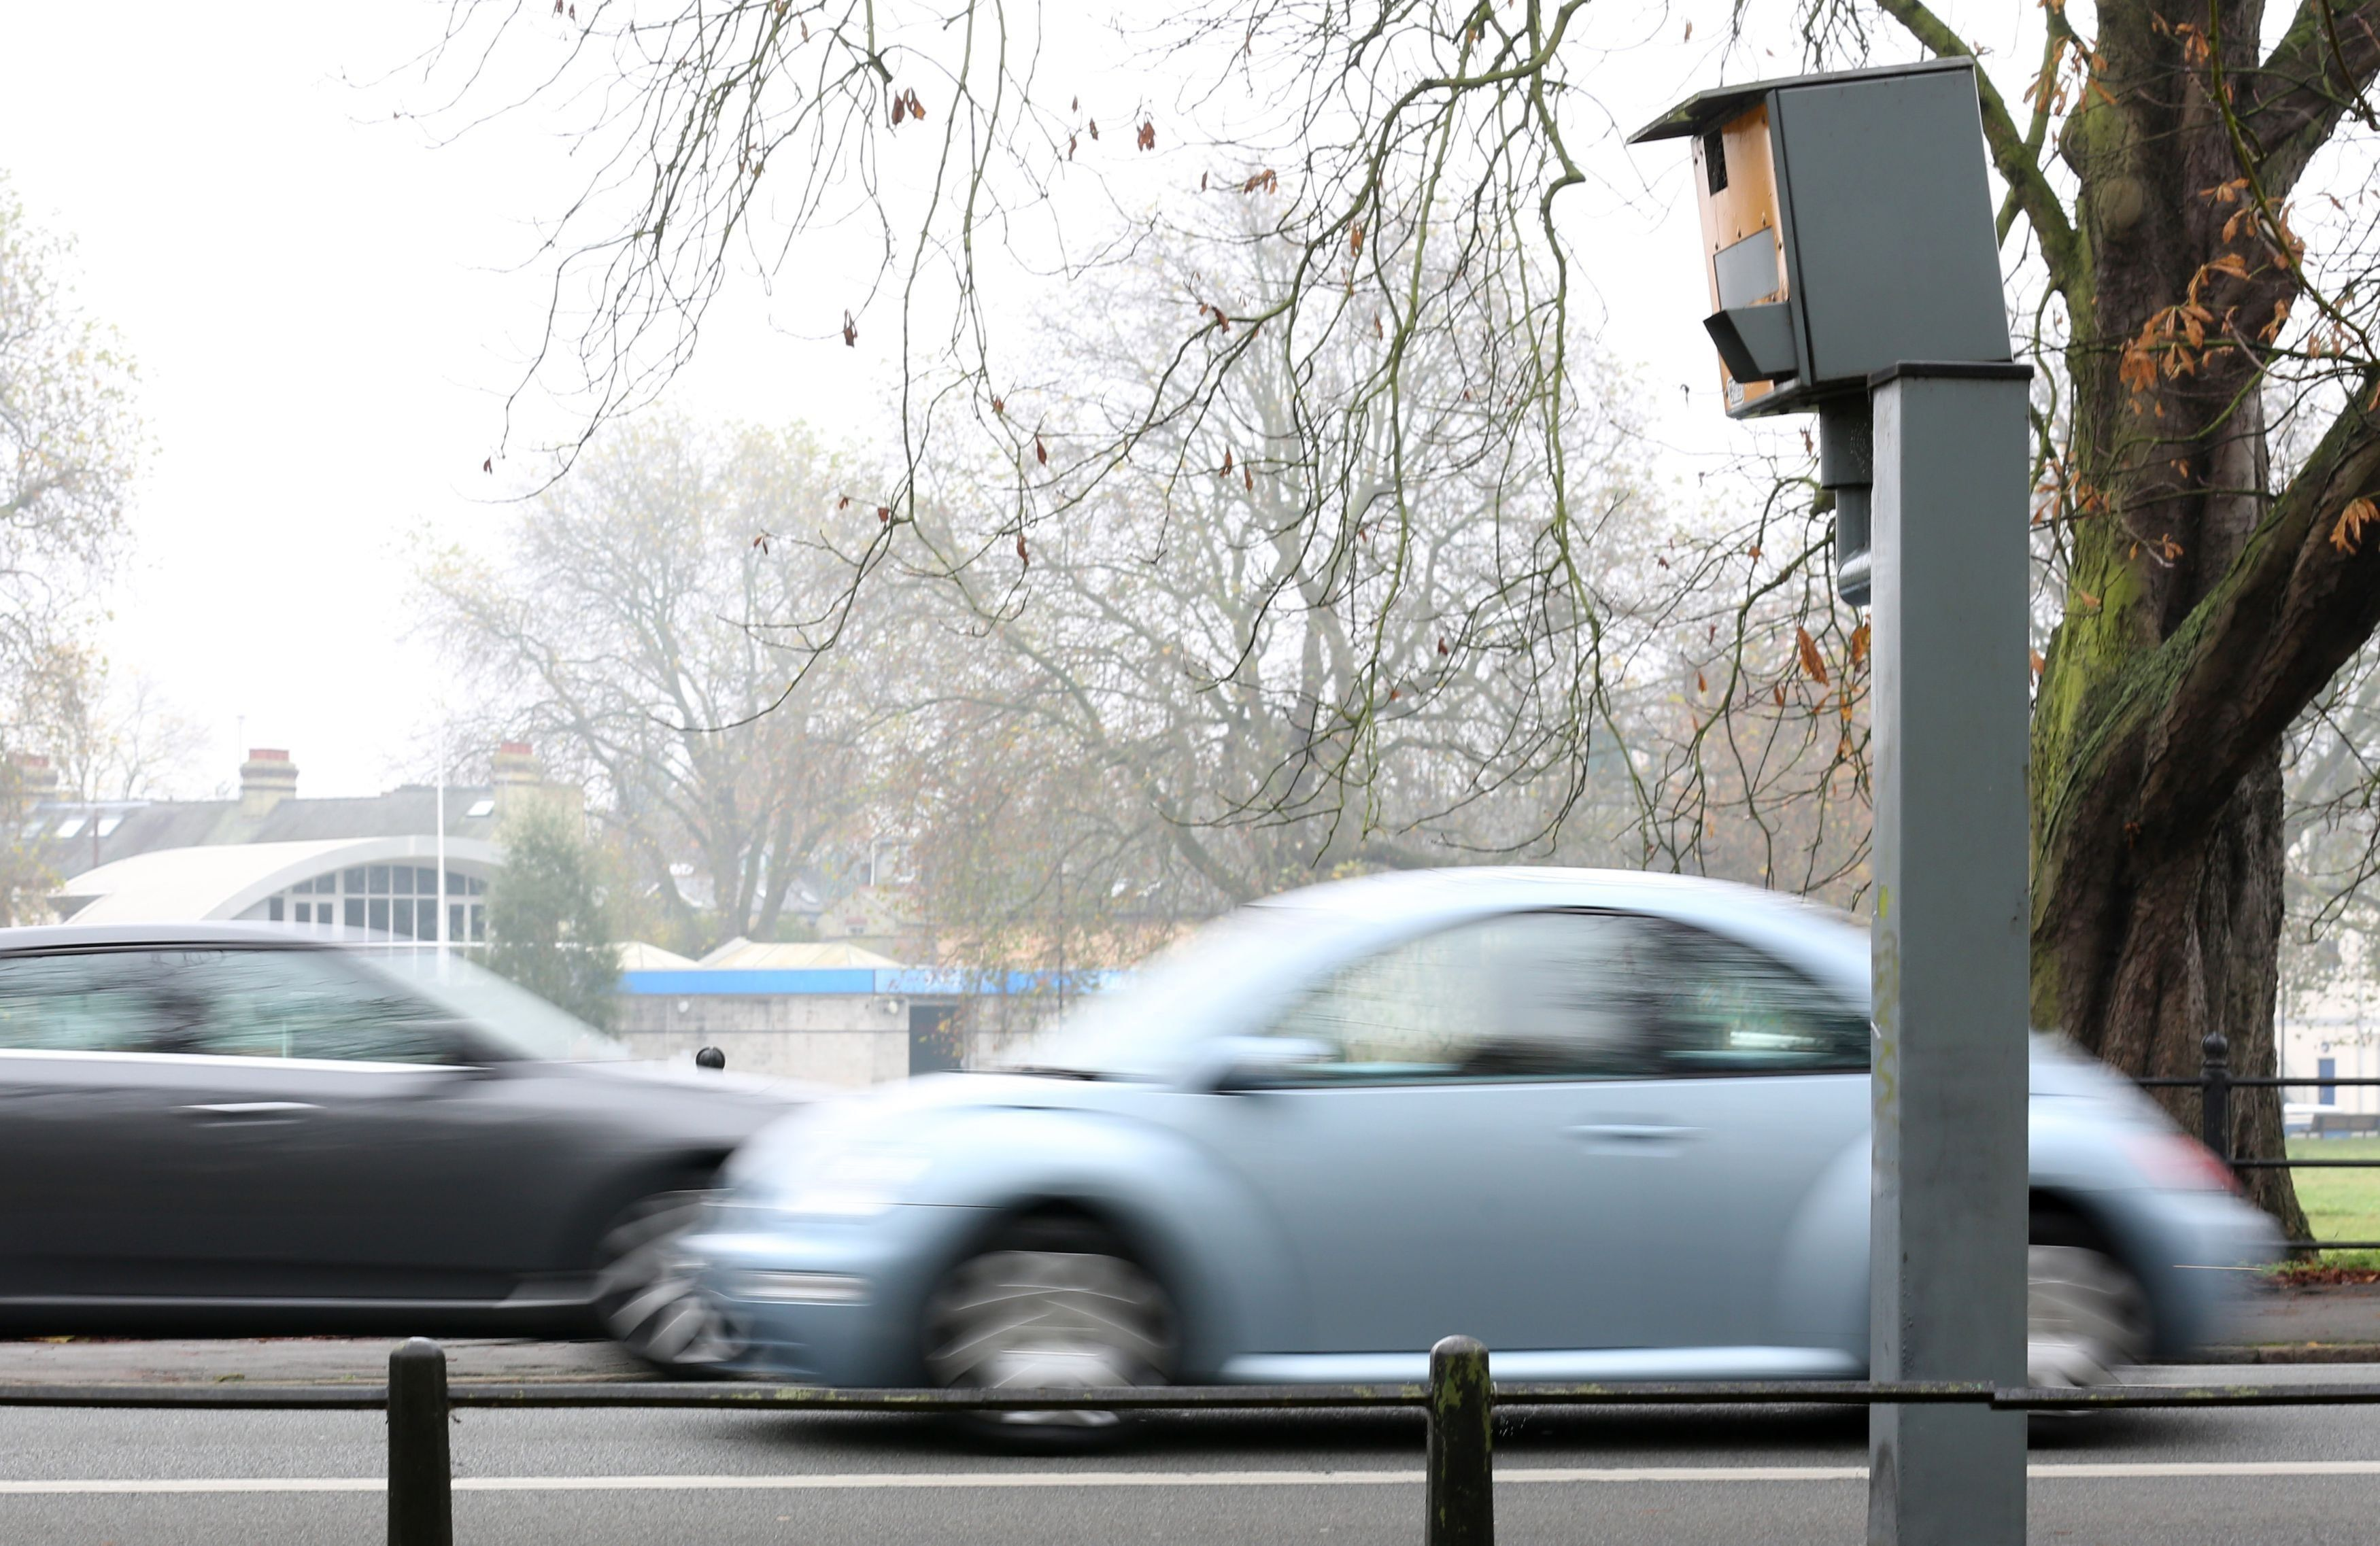 Police Federation Slams Police Chief's Plans To Penalise Drivers Doing 1mph Over Speed